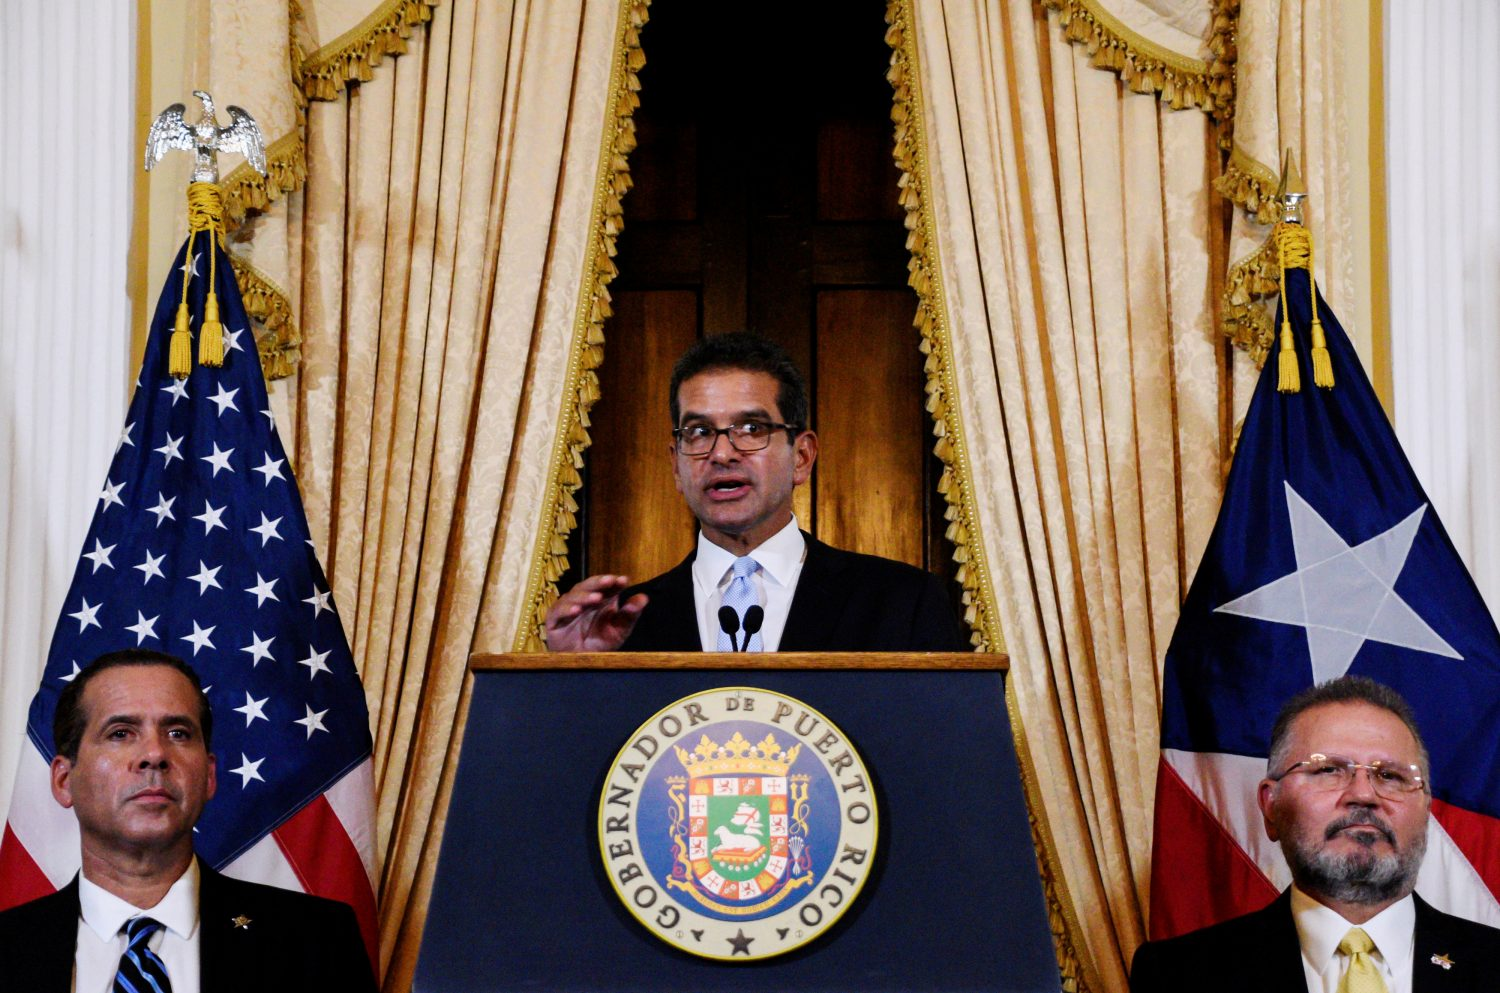 FILE PHOTO: Pedro Pierluisi holds a news conference after swearing in as Governor of Puerto Rico in San Juan, Puerto Rico August 2, 2019. REUTERS/Gabriella N. Baez/File Photo